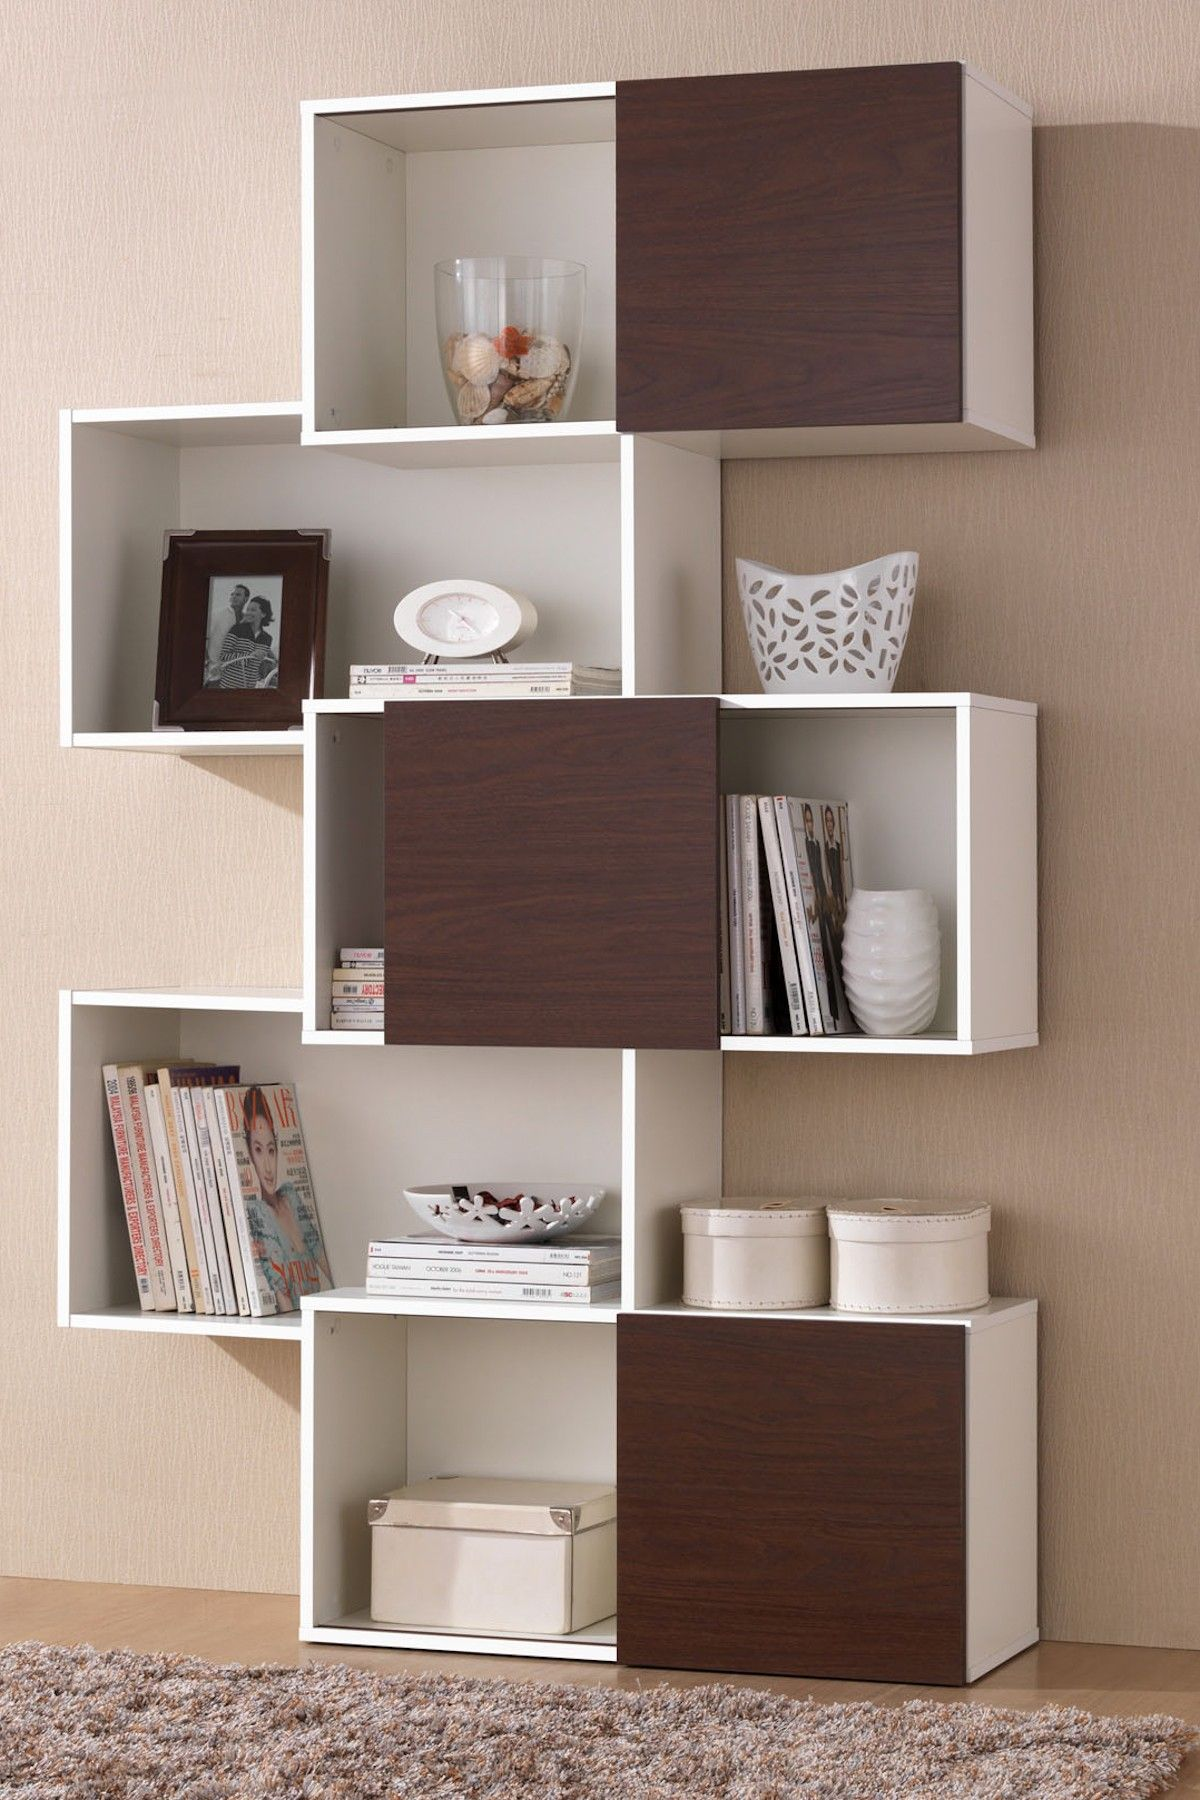 Living Room Storage Units Argos Wall Decor Images Modern Bookshelf With Sliding Doors. Cool! | Products And ...